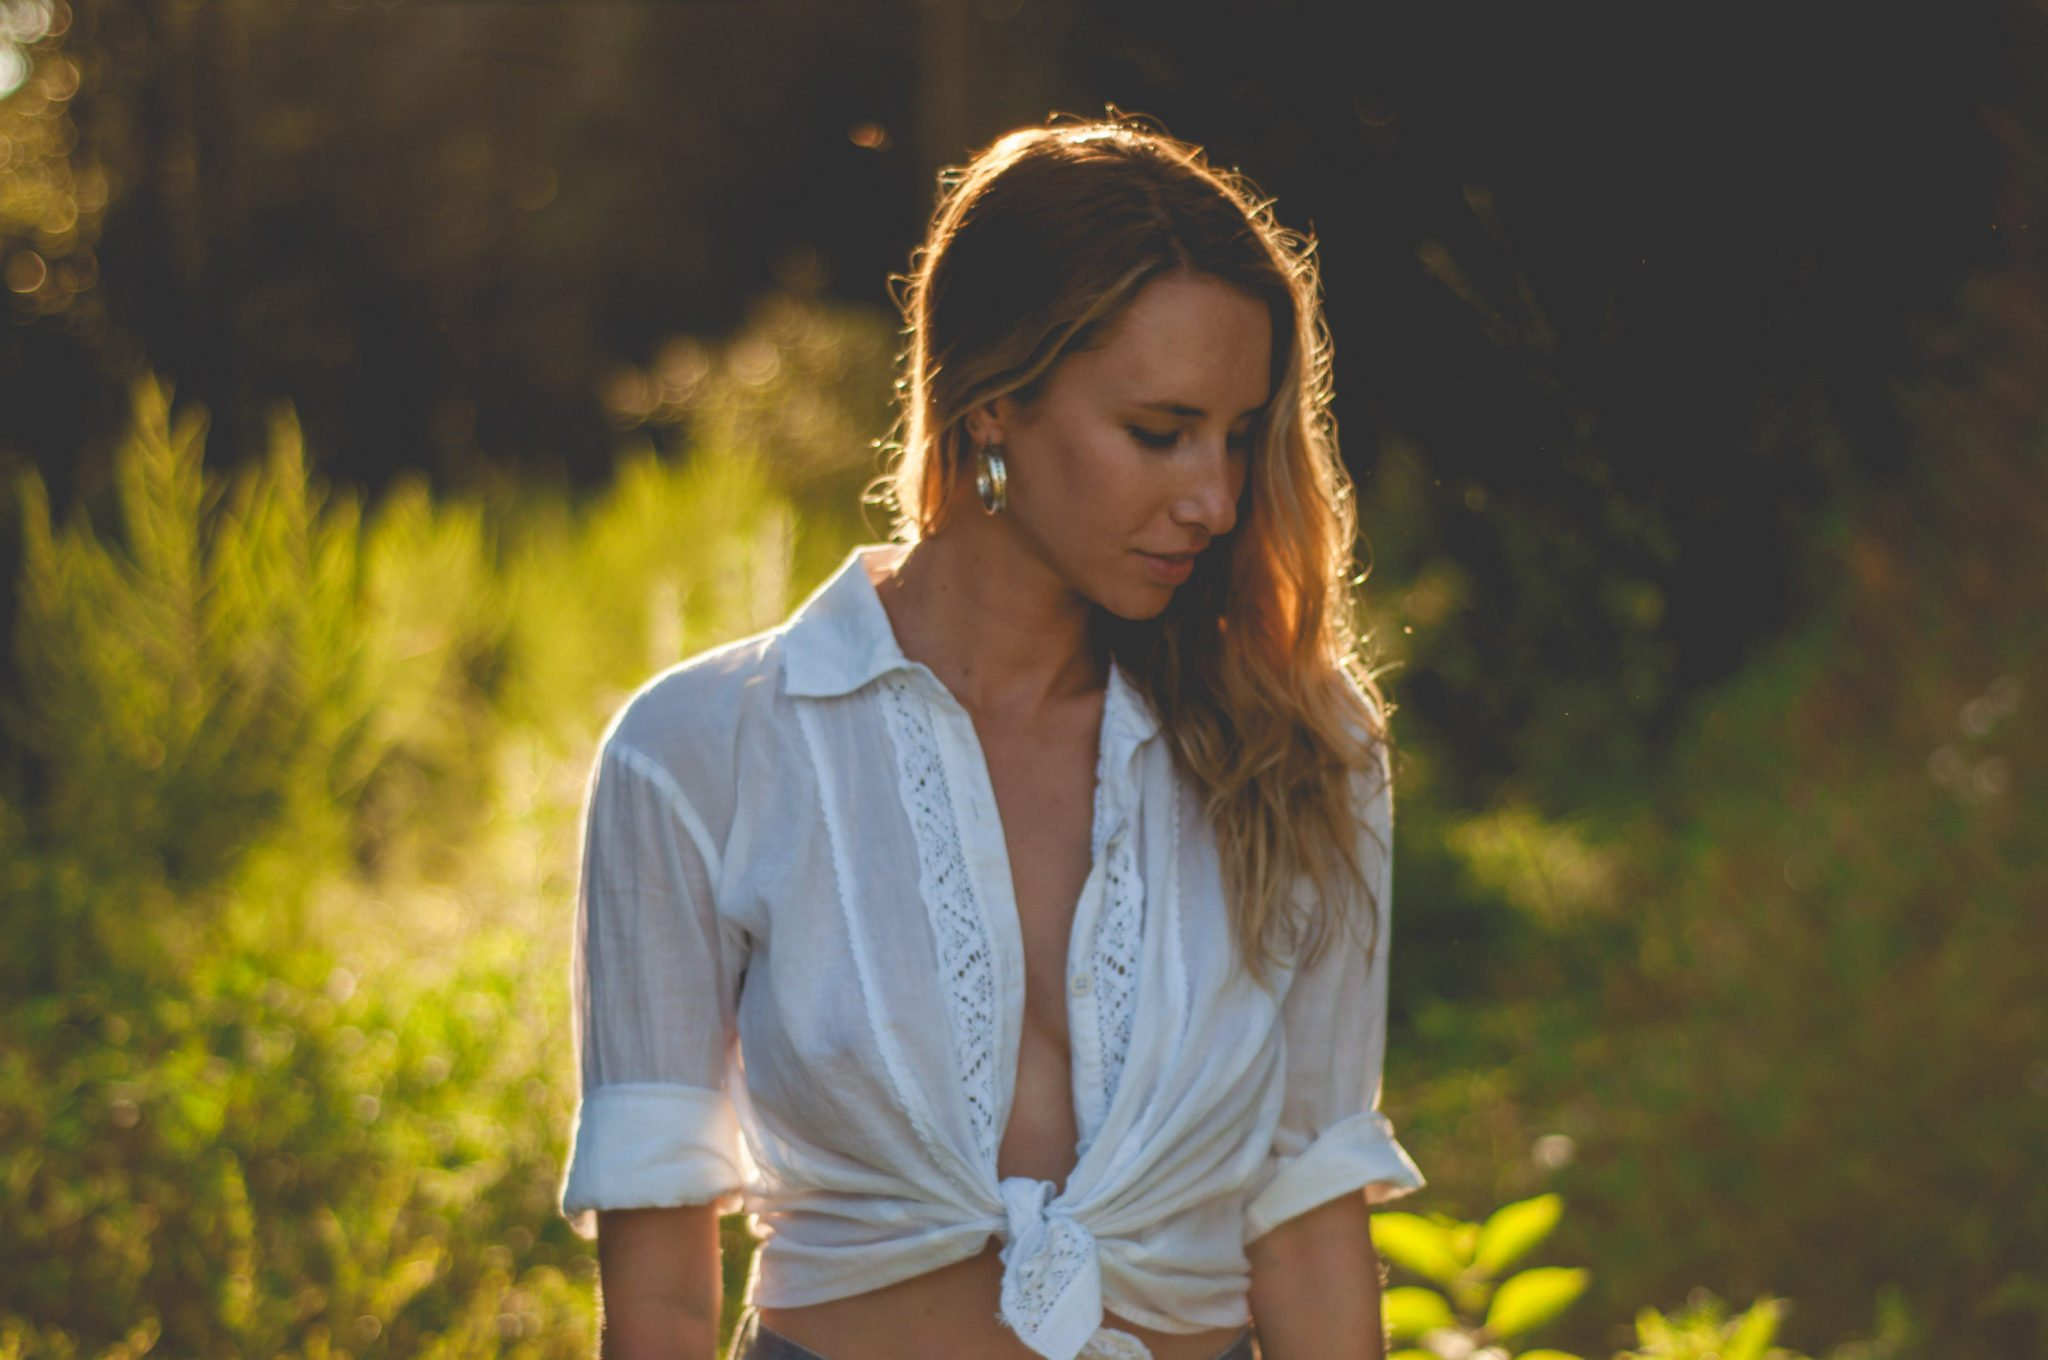 Chelsea owens in a white tied up button up in the golden light